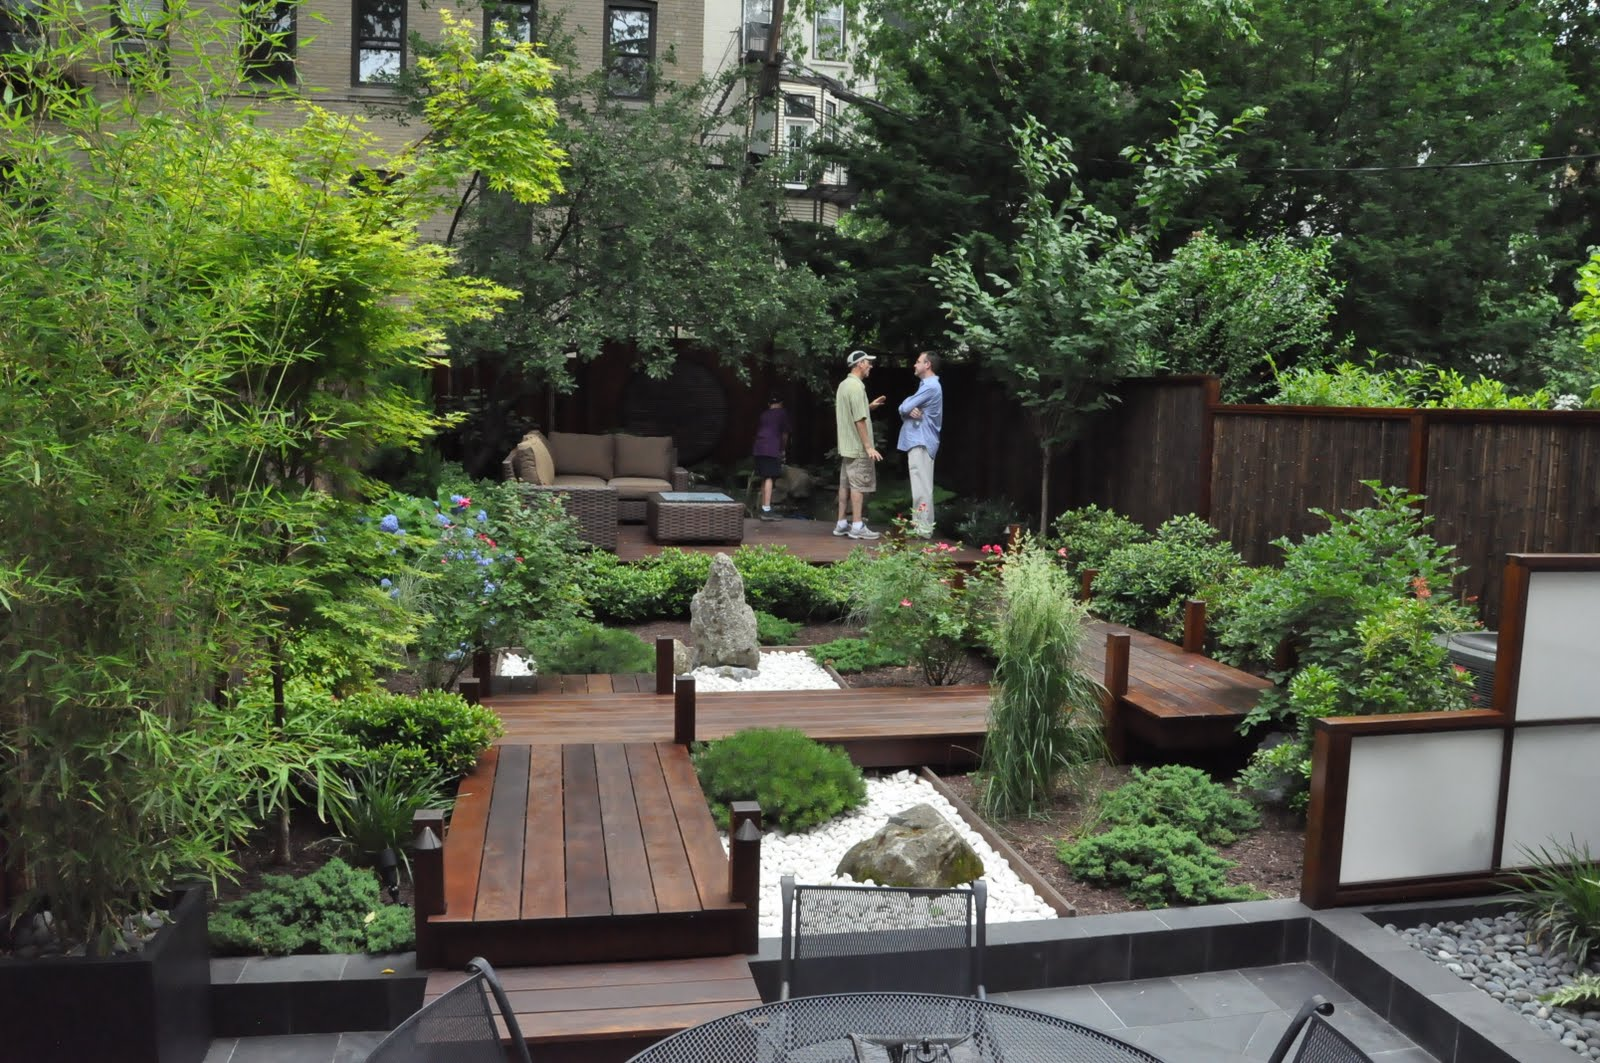 Hoboken secret garden tour part 1 hoboken journal photo for Best garden design books uk